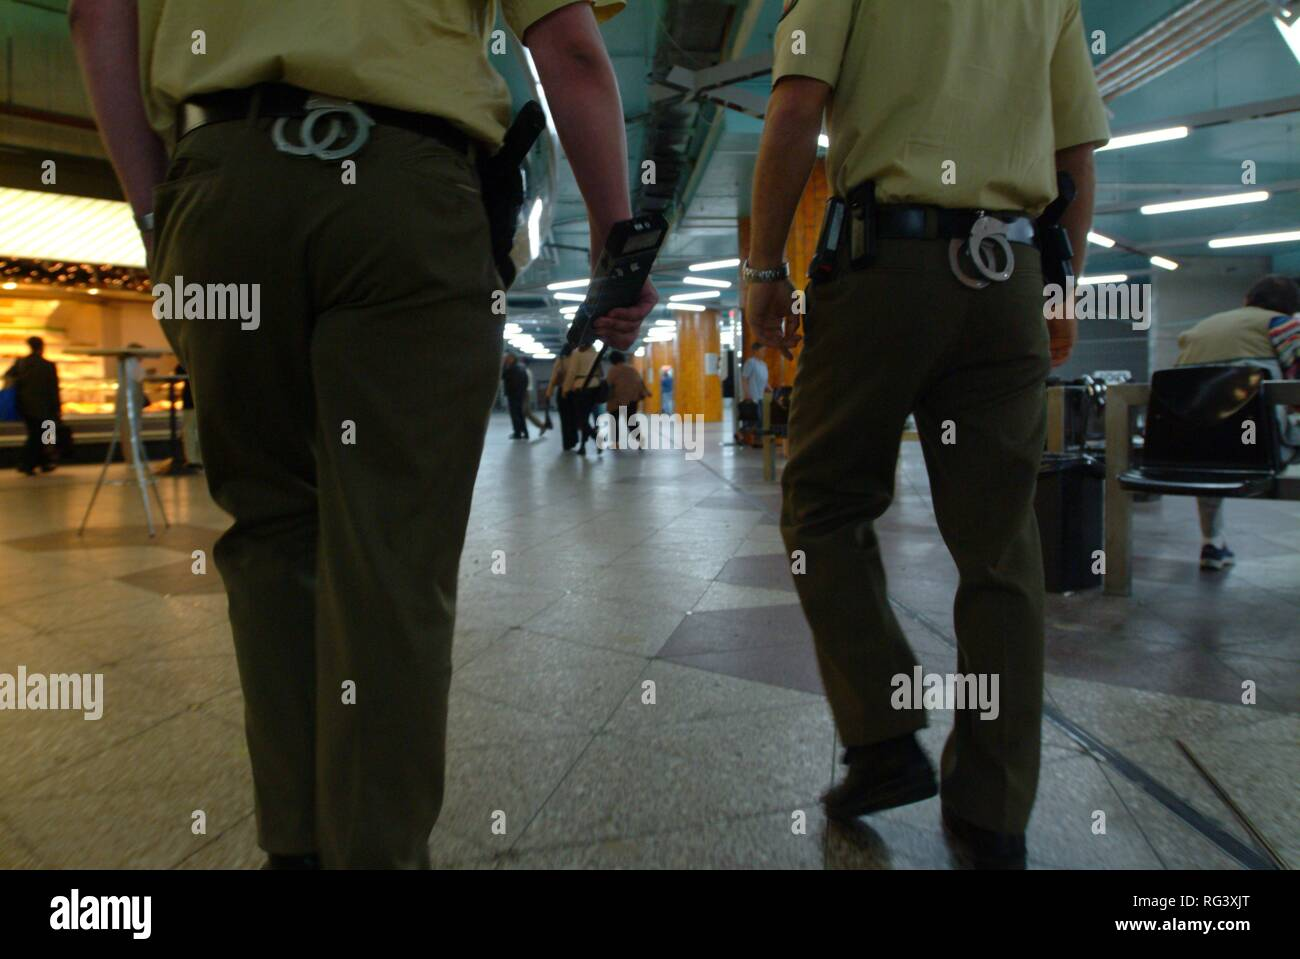 DEU, Germany, Essen: Patrol in the subawy.Daily police life. Officer from a city police station. - Stock Image